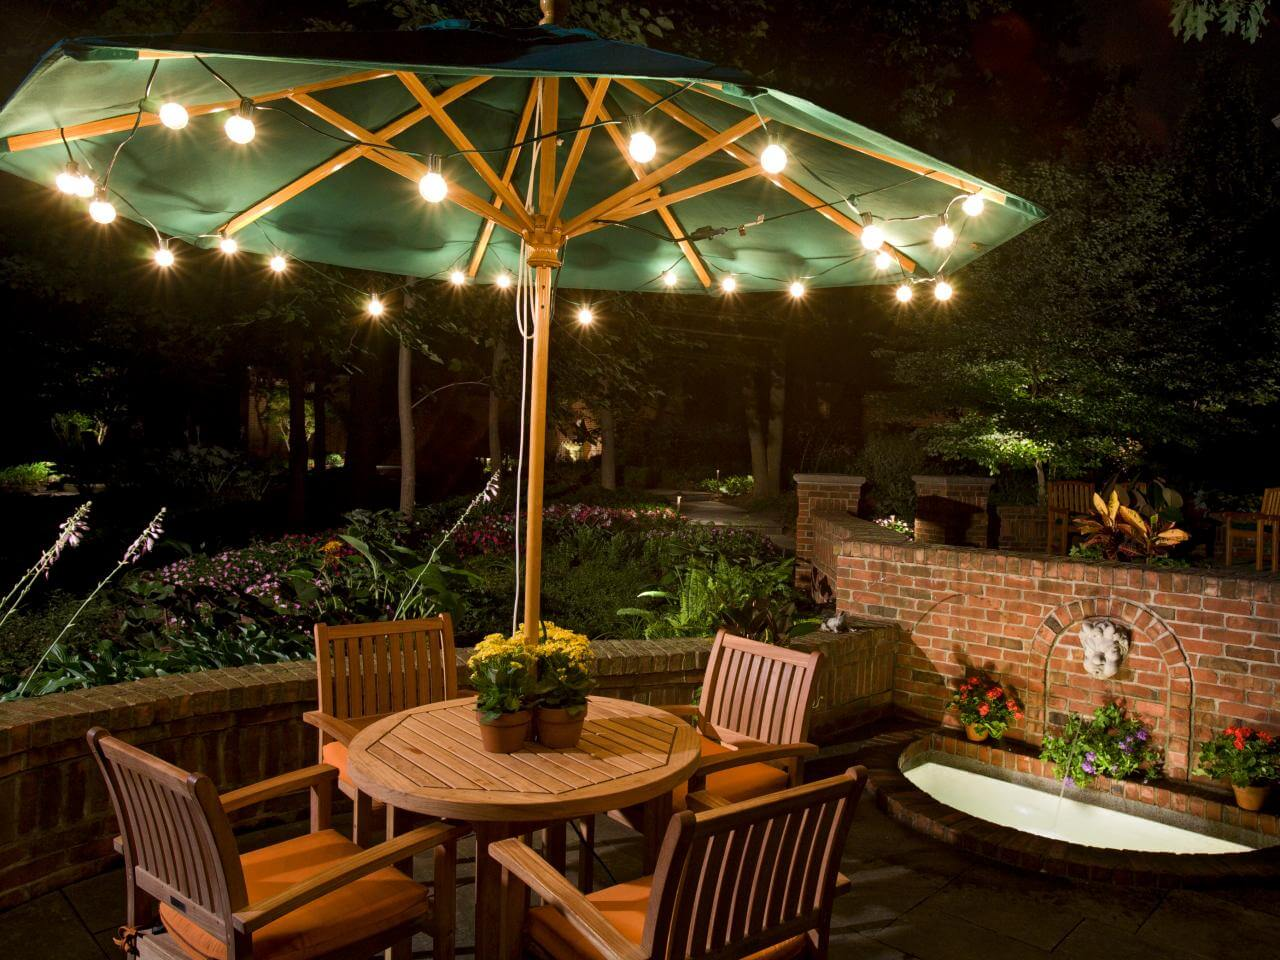 FOLLOW THE FOCAL POINT TO ADD LED PATIO STRING LIGHTS